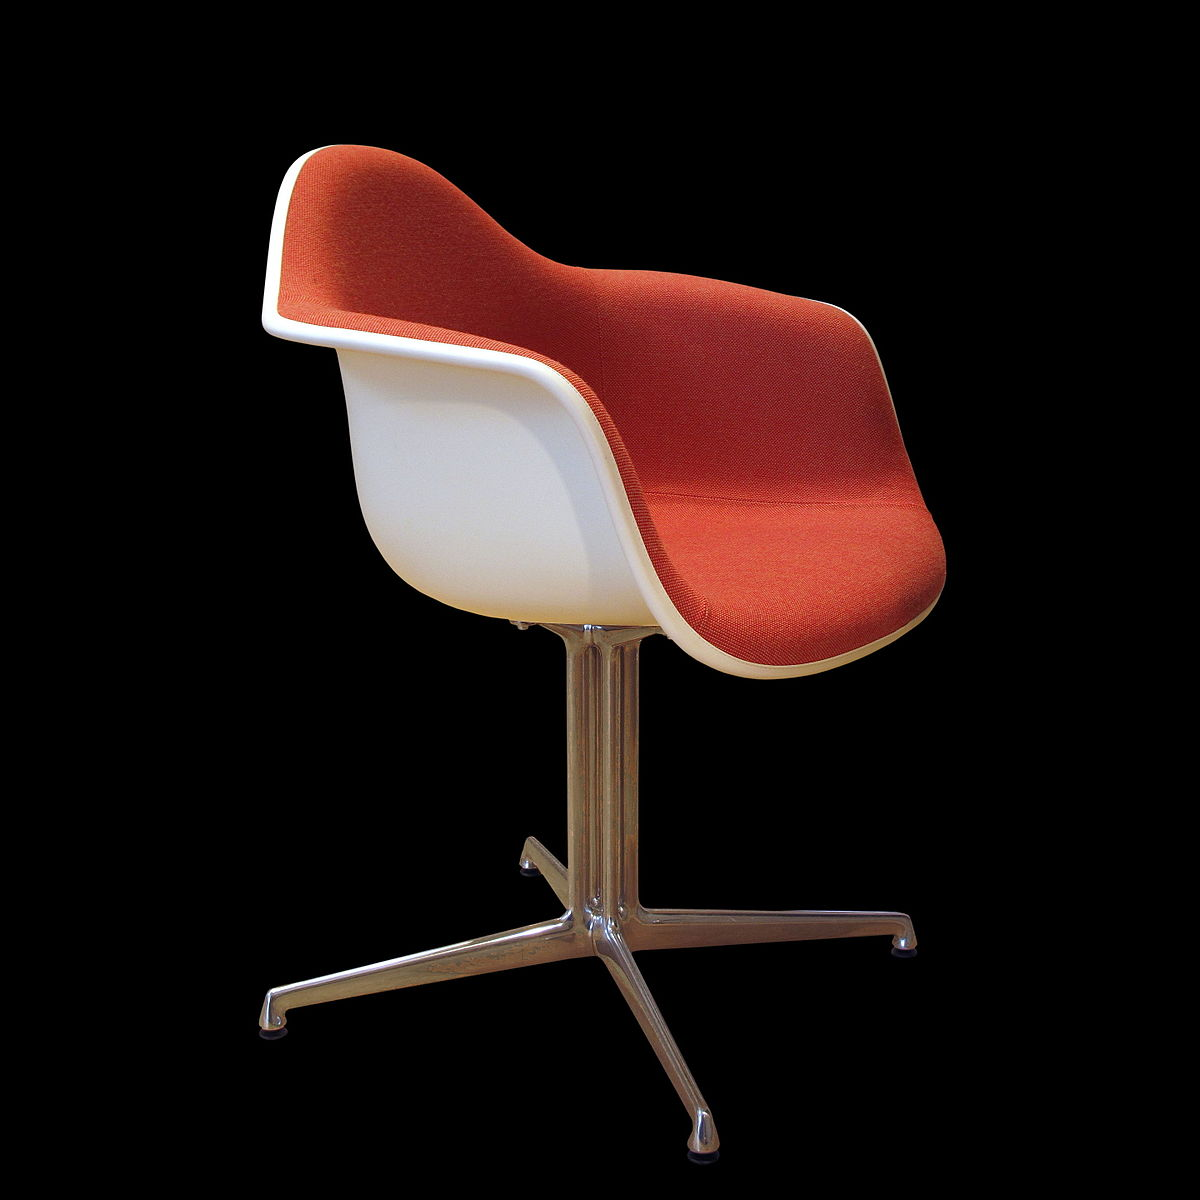 Original Eames Chair Eames Fiberglass Armchair Wikipedia